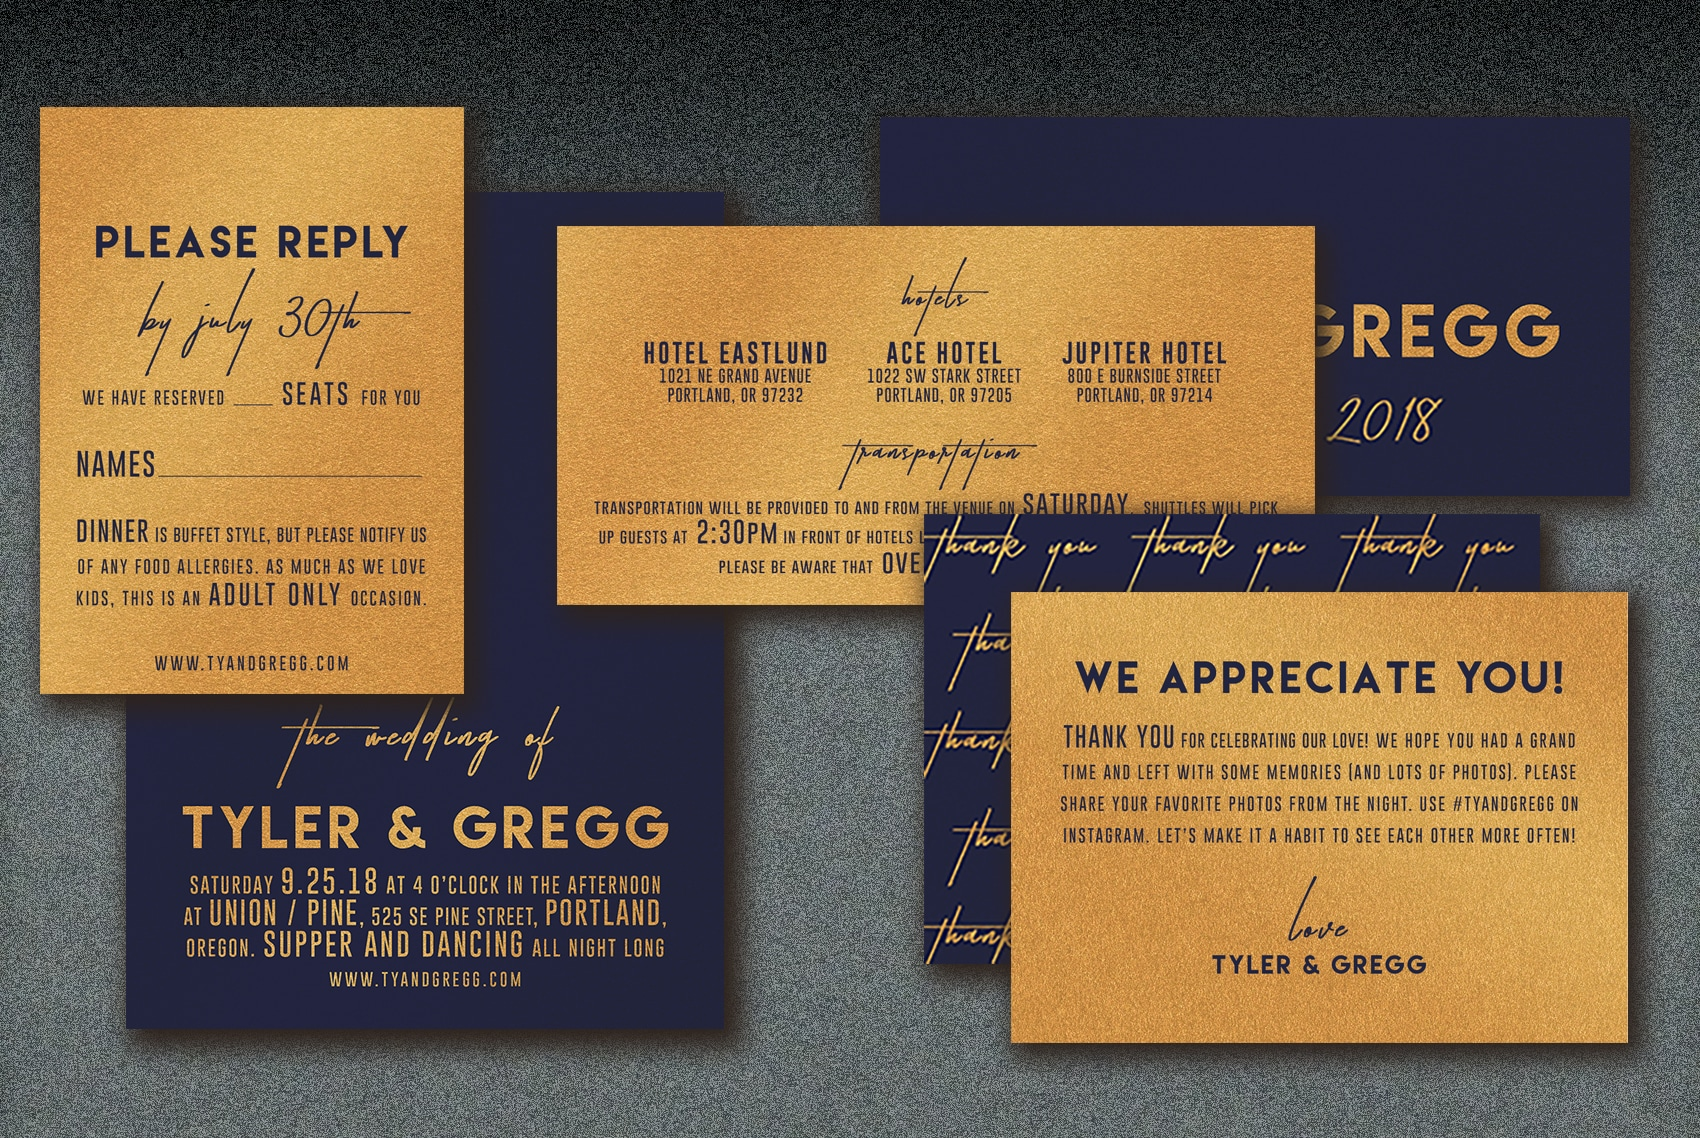 Printed on copper metallic paper, this handsome wedding suite has a unique designerly appeal with it's combination of block and hand written script lettering.